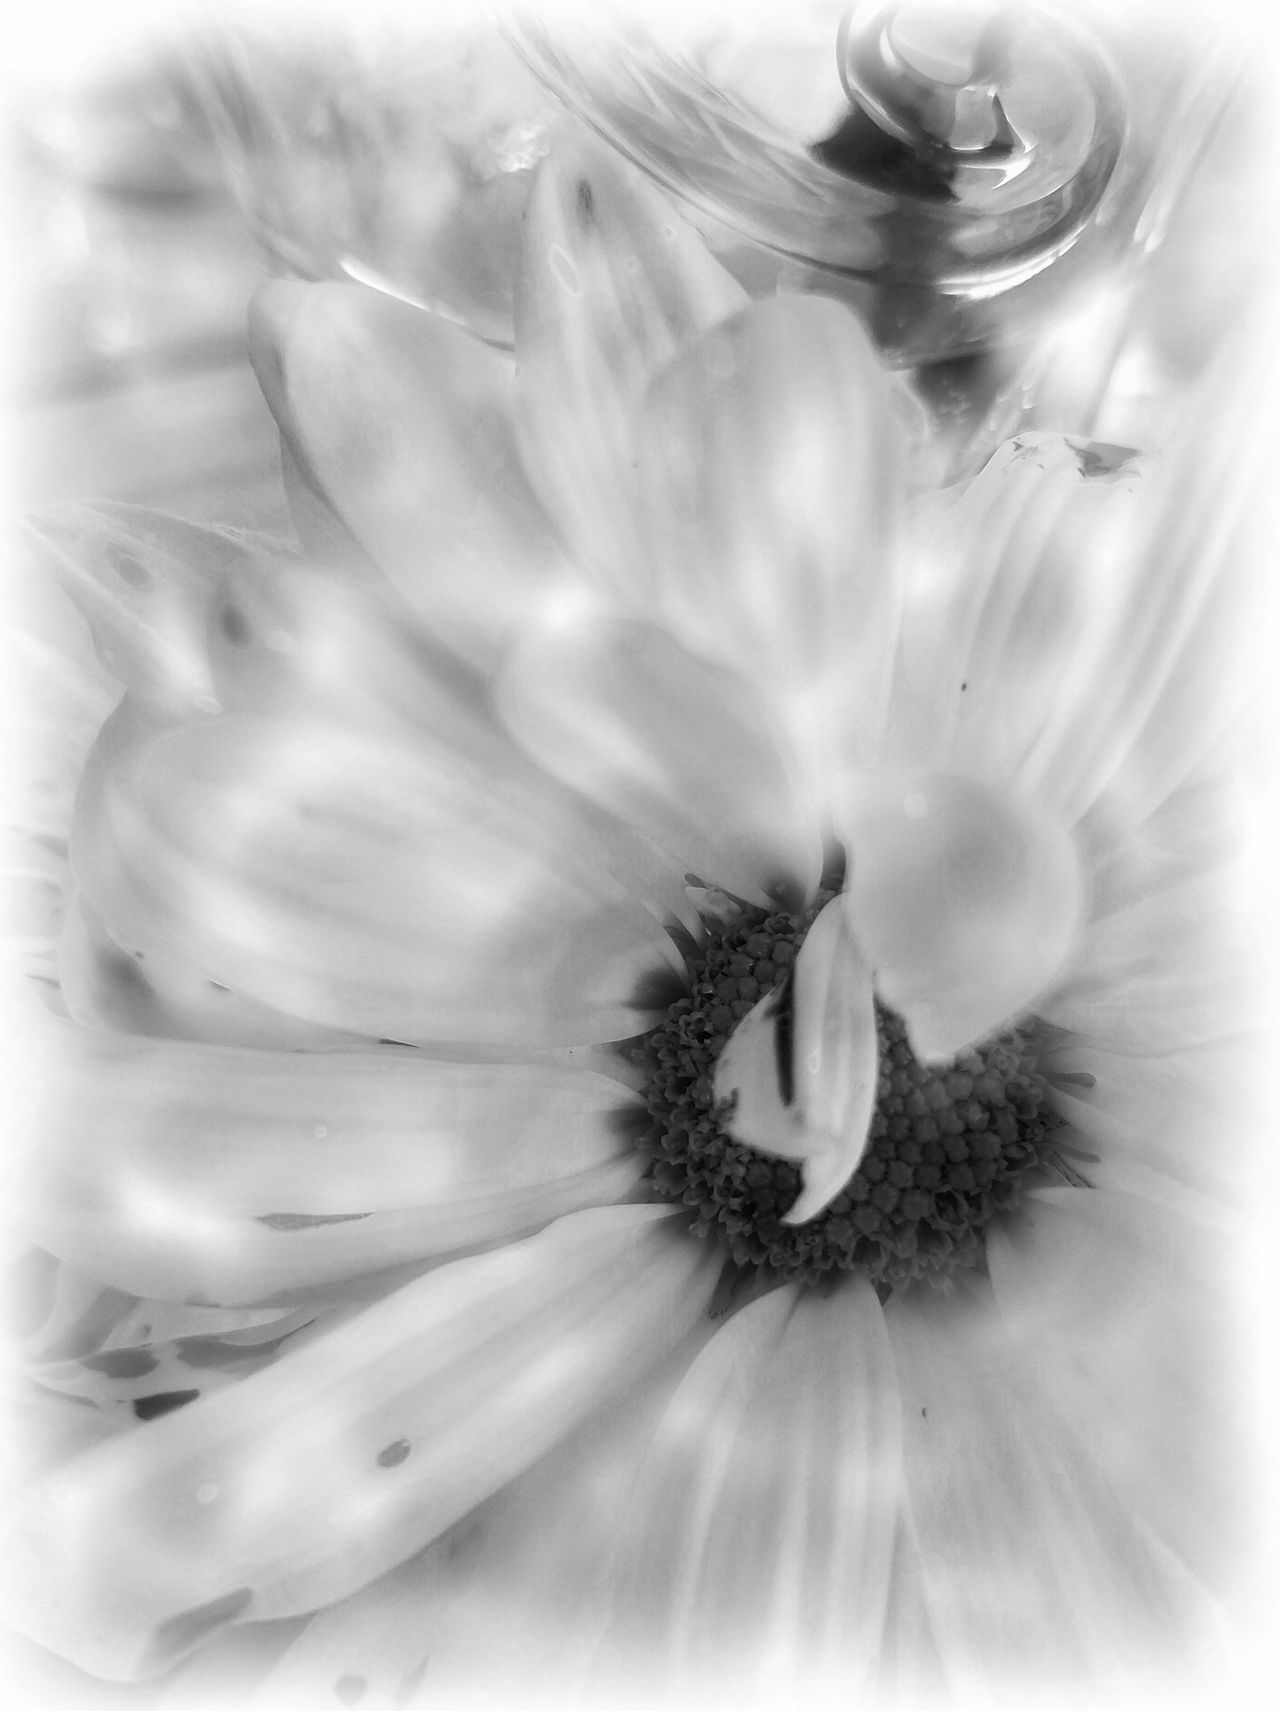 B&W Spinner Backgrounds Beauty In Nature Close-up Daisy Day Easter Ready Flower Flower Head Fragility Freshness Full Frame Growth MUR B&W Nature No People Outdoors Petal Plant Spiral Spring